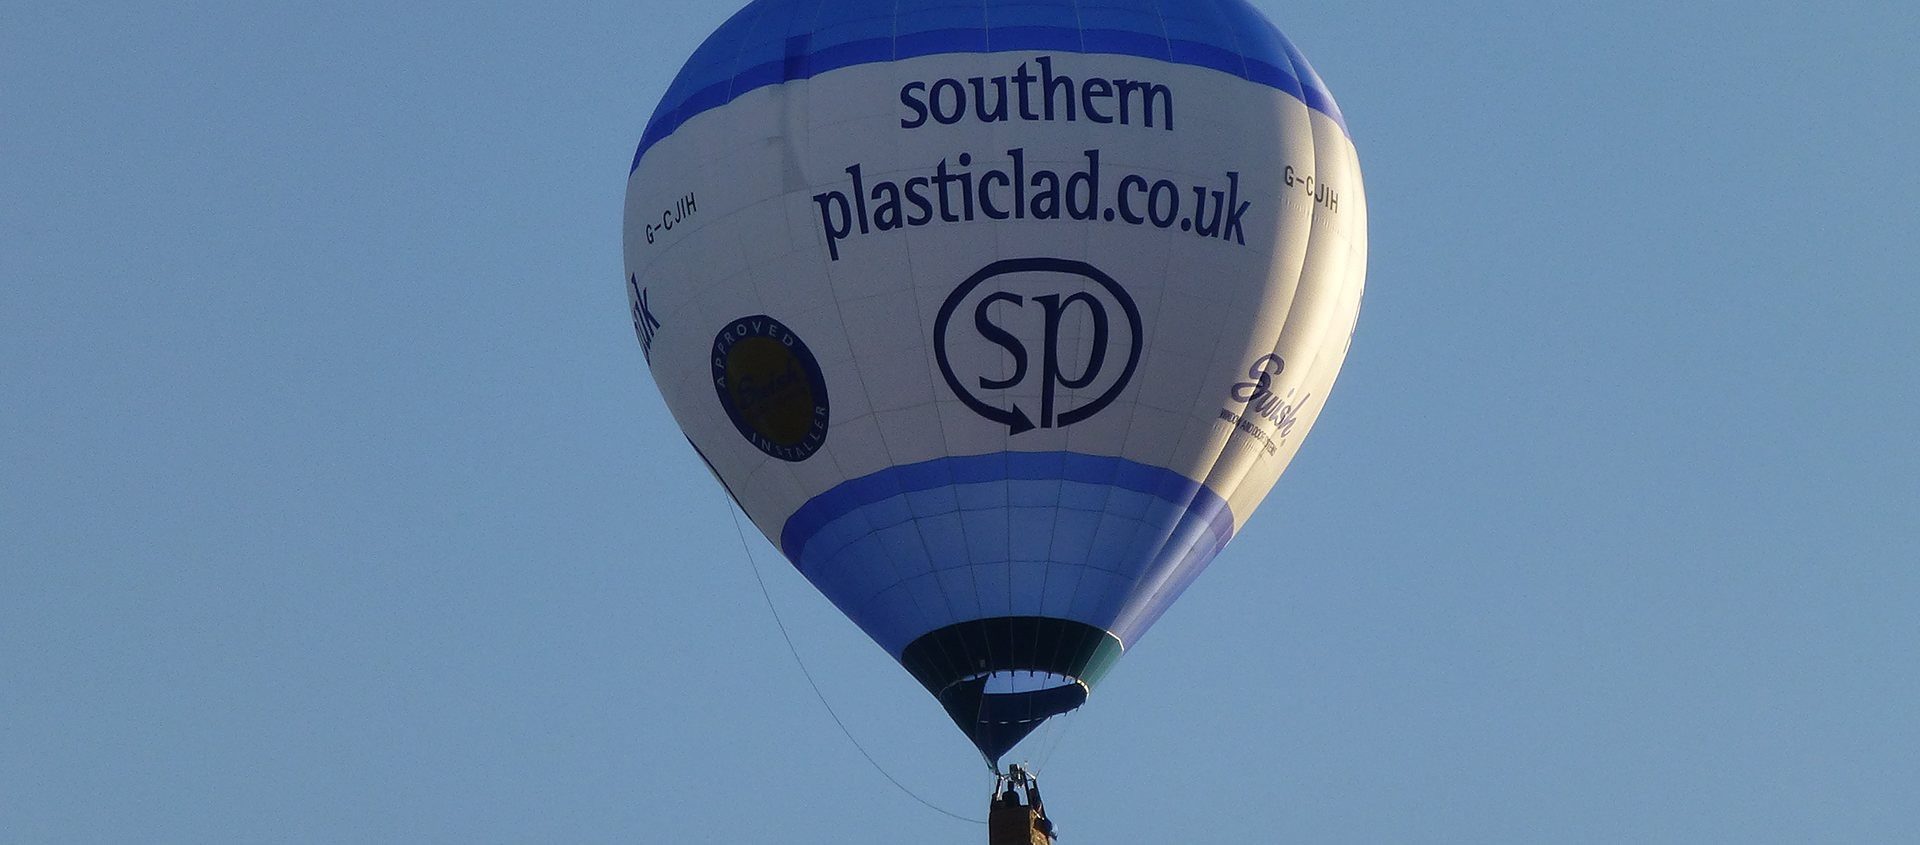 Southern Plasticlad Hot Air Balloon